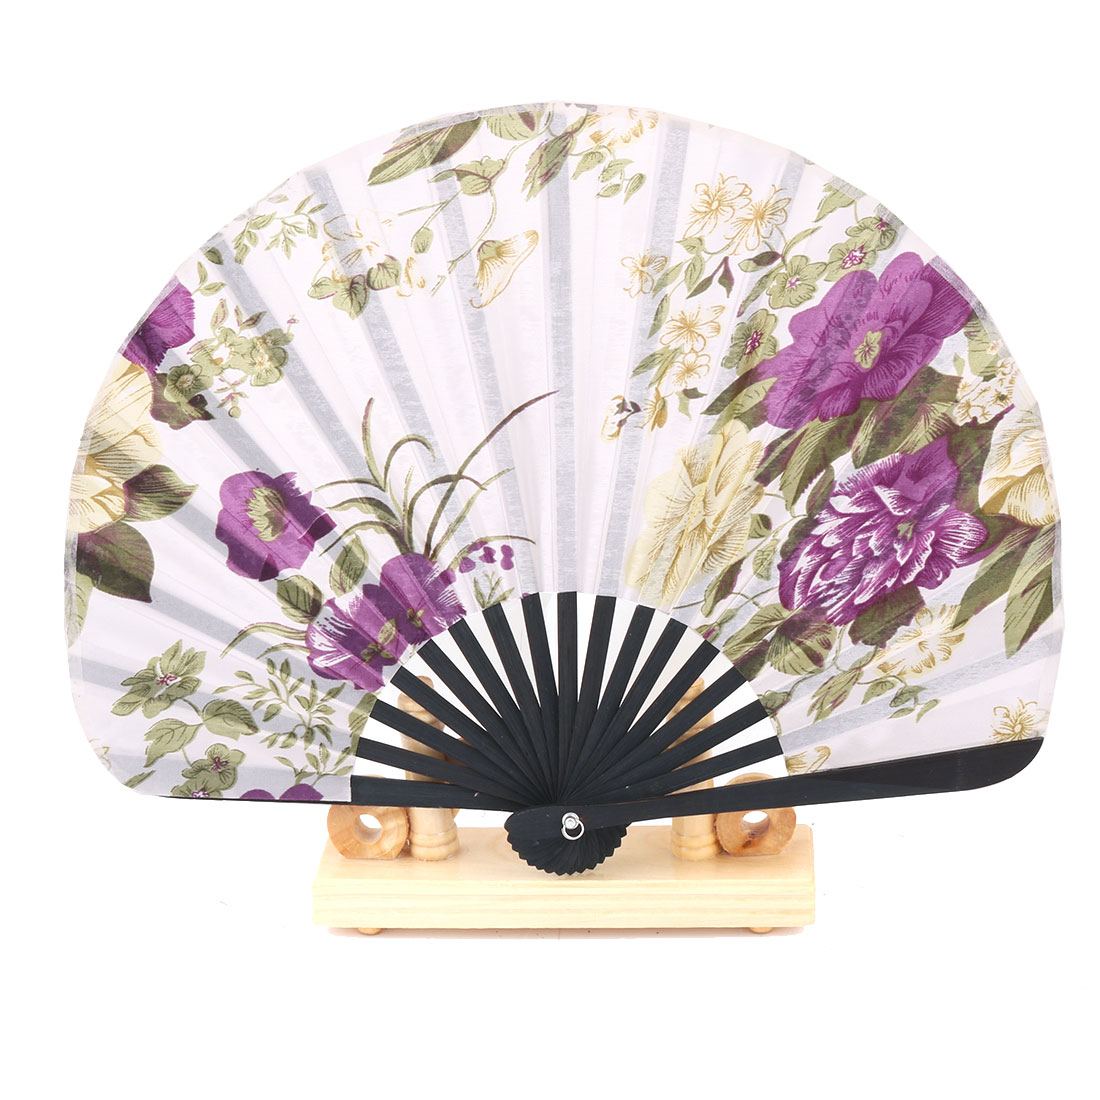 Dance Bamboo Flower Pattern Cooling Folding Hand Fan Display Multicolor 2 in 1